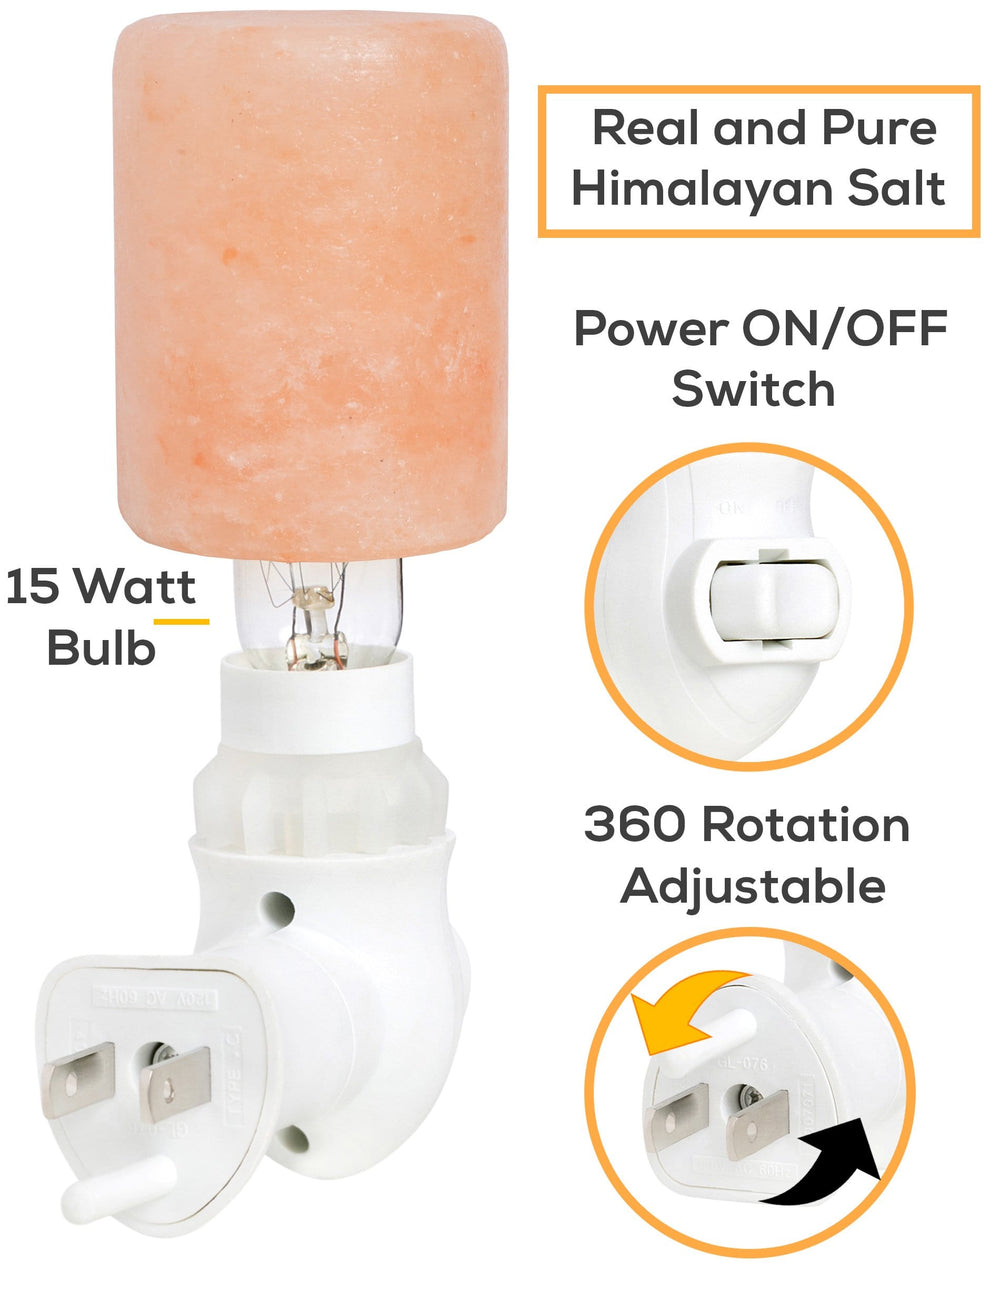 Feel Good Light Himalayan Salt Wall Plugin Mini-Lamp Hand Carved Natural Crystal Himalayan Salt Lamp Night Light With Ul-Approved Plug; Purifying Salt Lamp Used For Decoration And Lighting